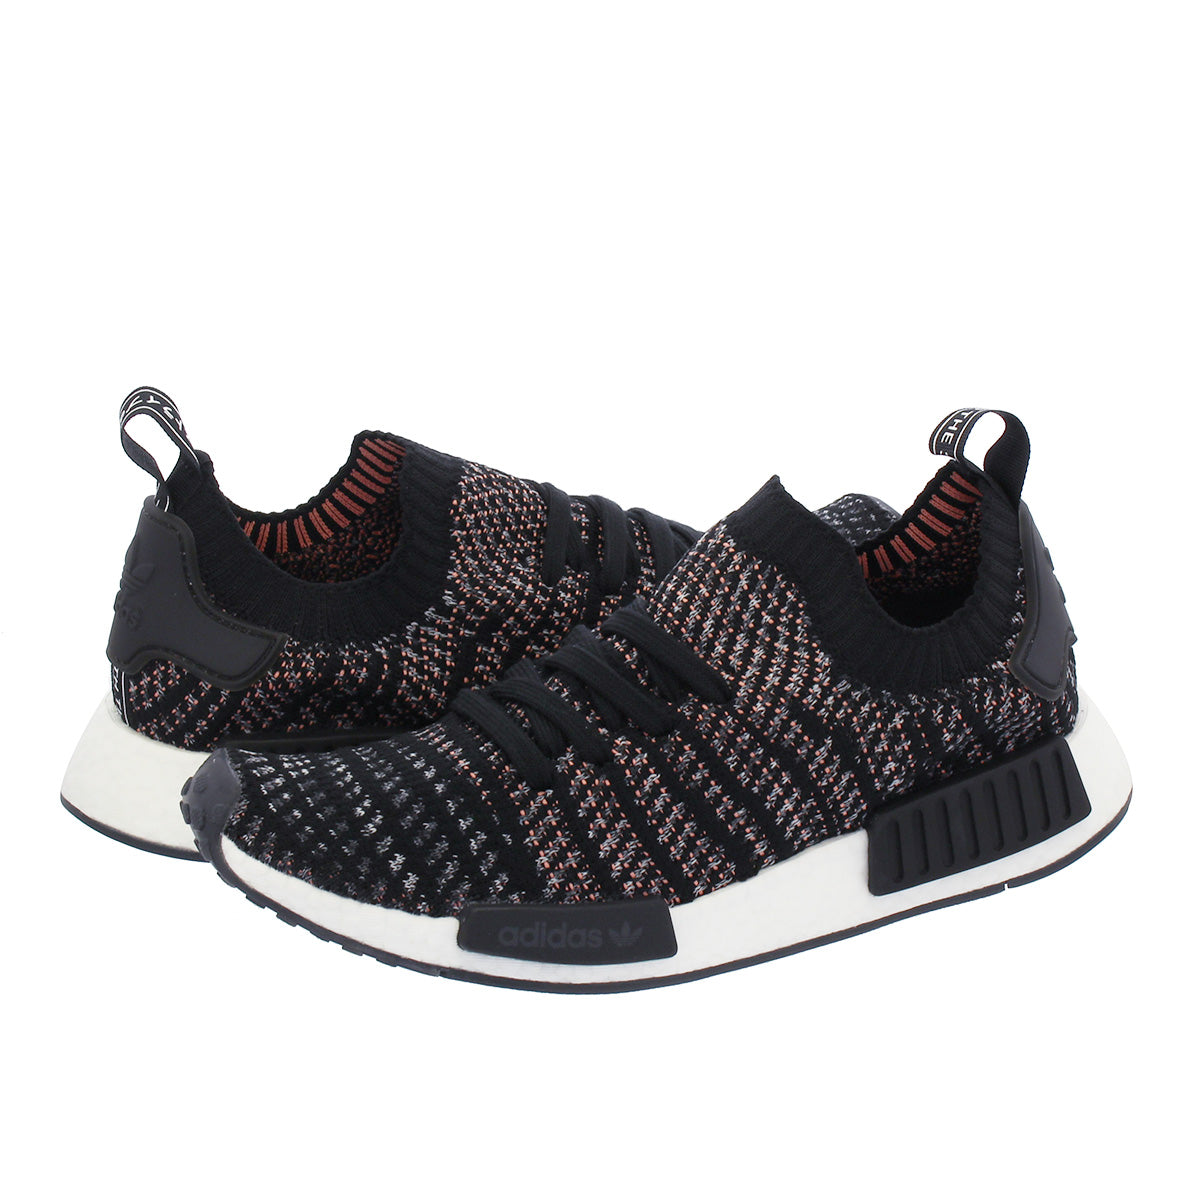 new style 84fad 12f07 Adidas Men's Originals NMD R1 STLT Black Gray Pink